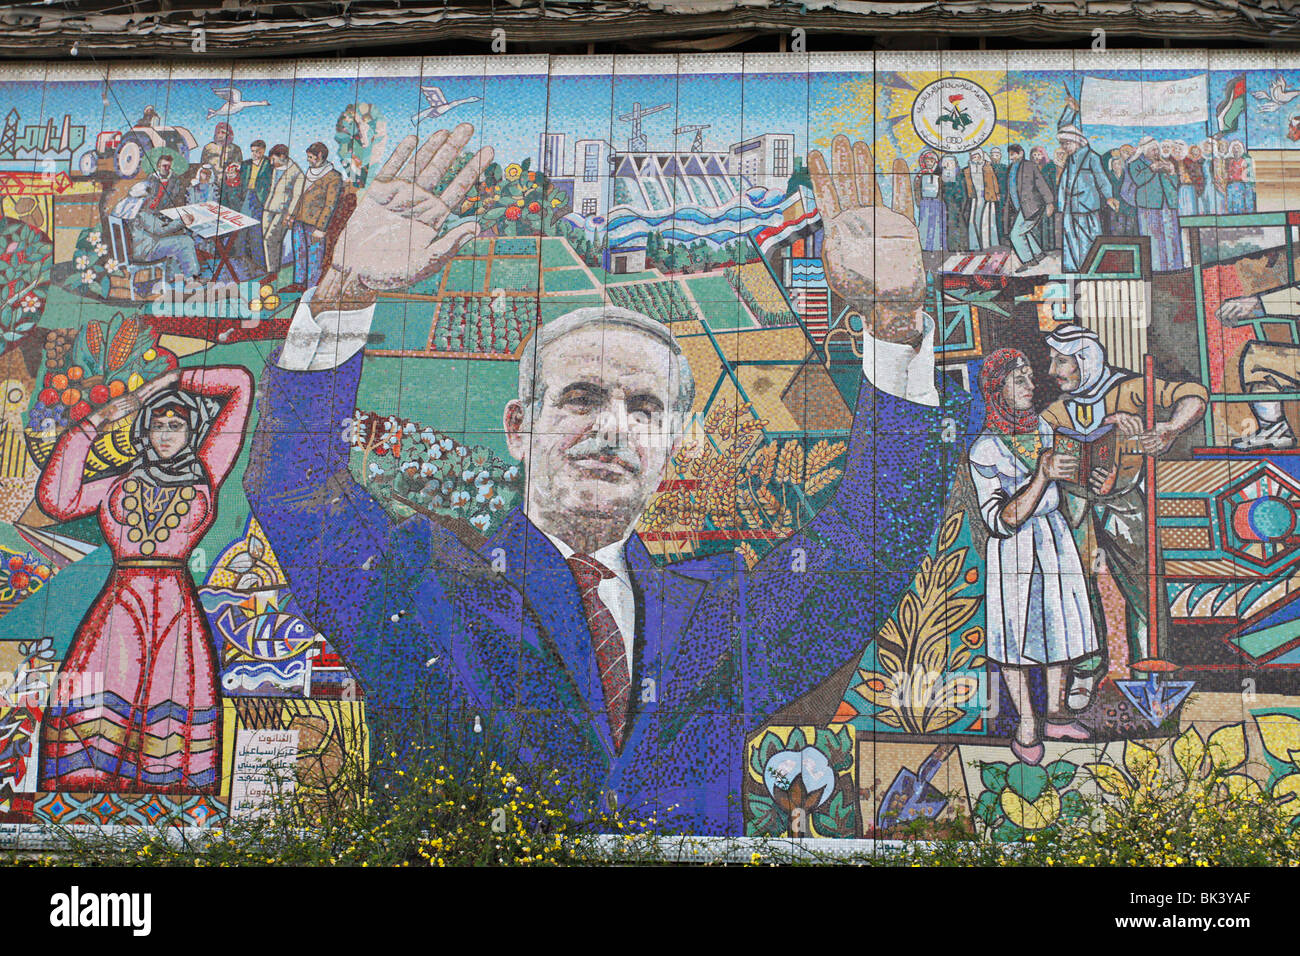 Image of former president of Syria, Hafez al-Assad. It is made from mosaic on a building. - Stock Image